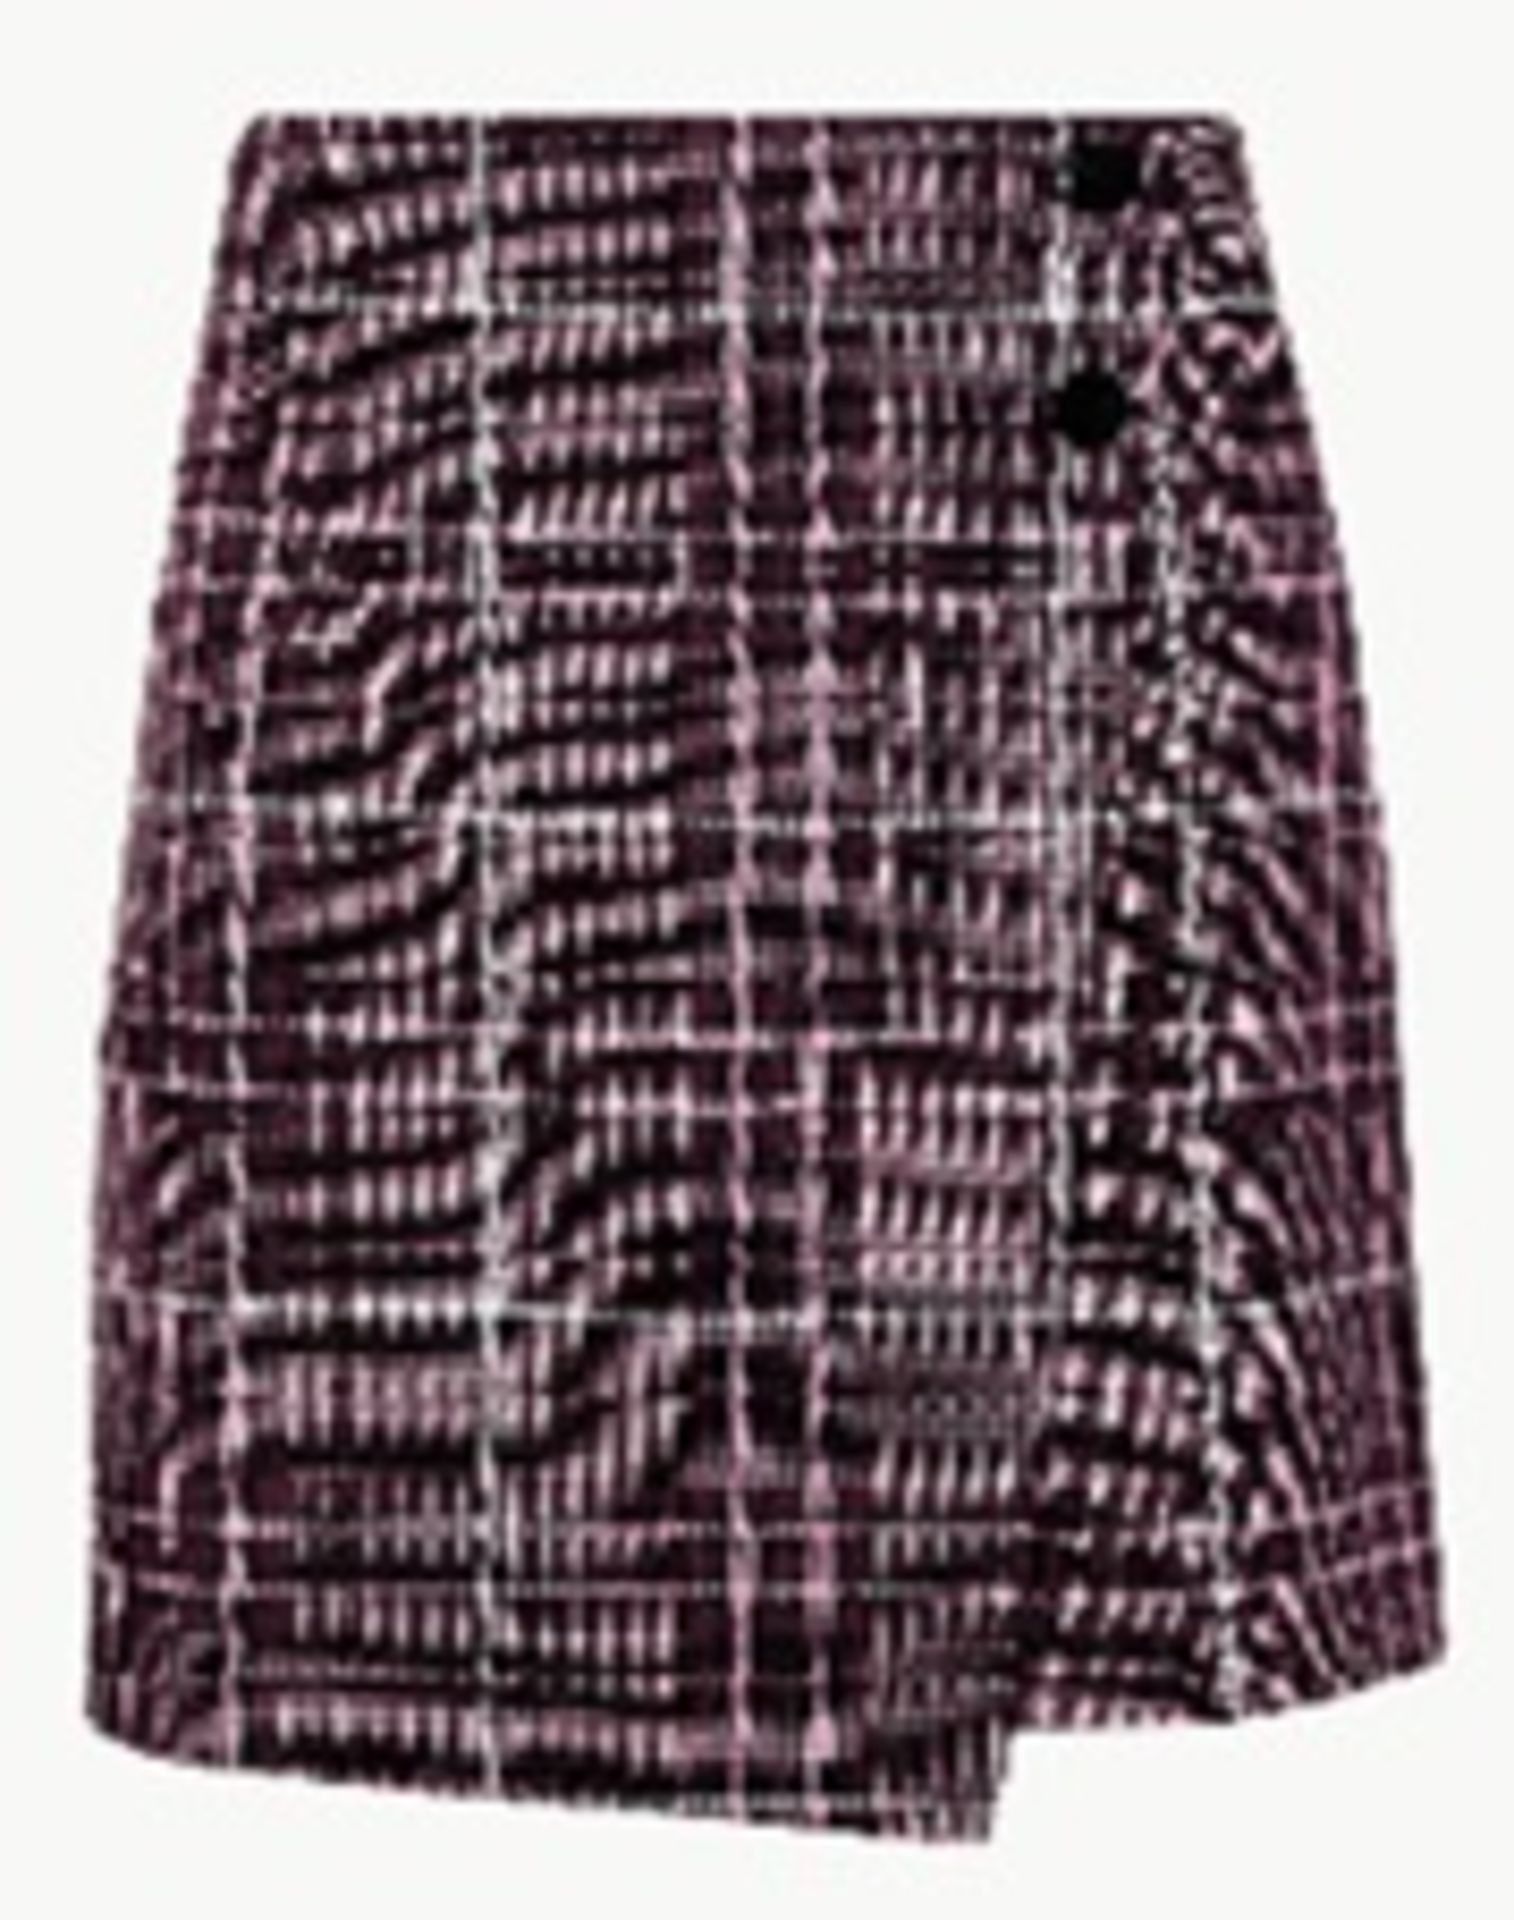 1 x mixed pallet = 143 items of Grade A M&S Womenswear. Approx Total RRP £5398.50